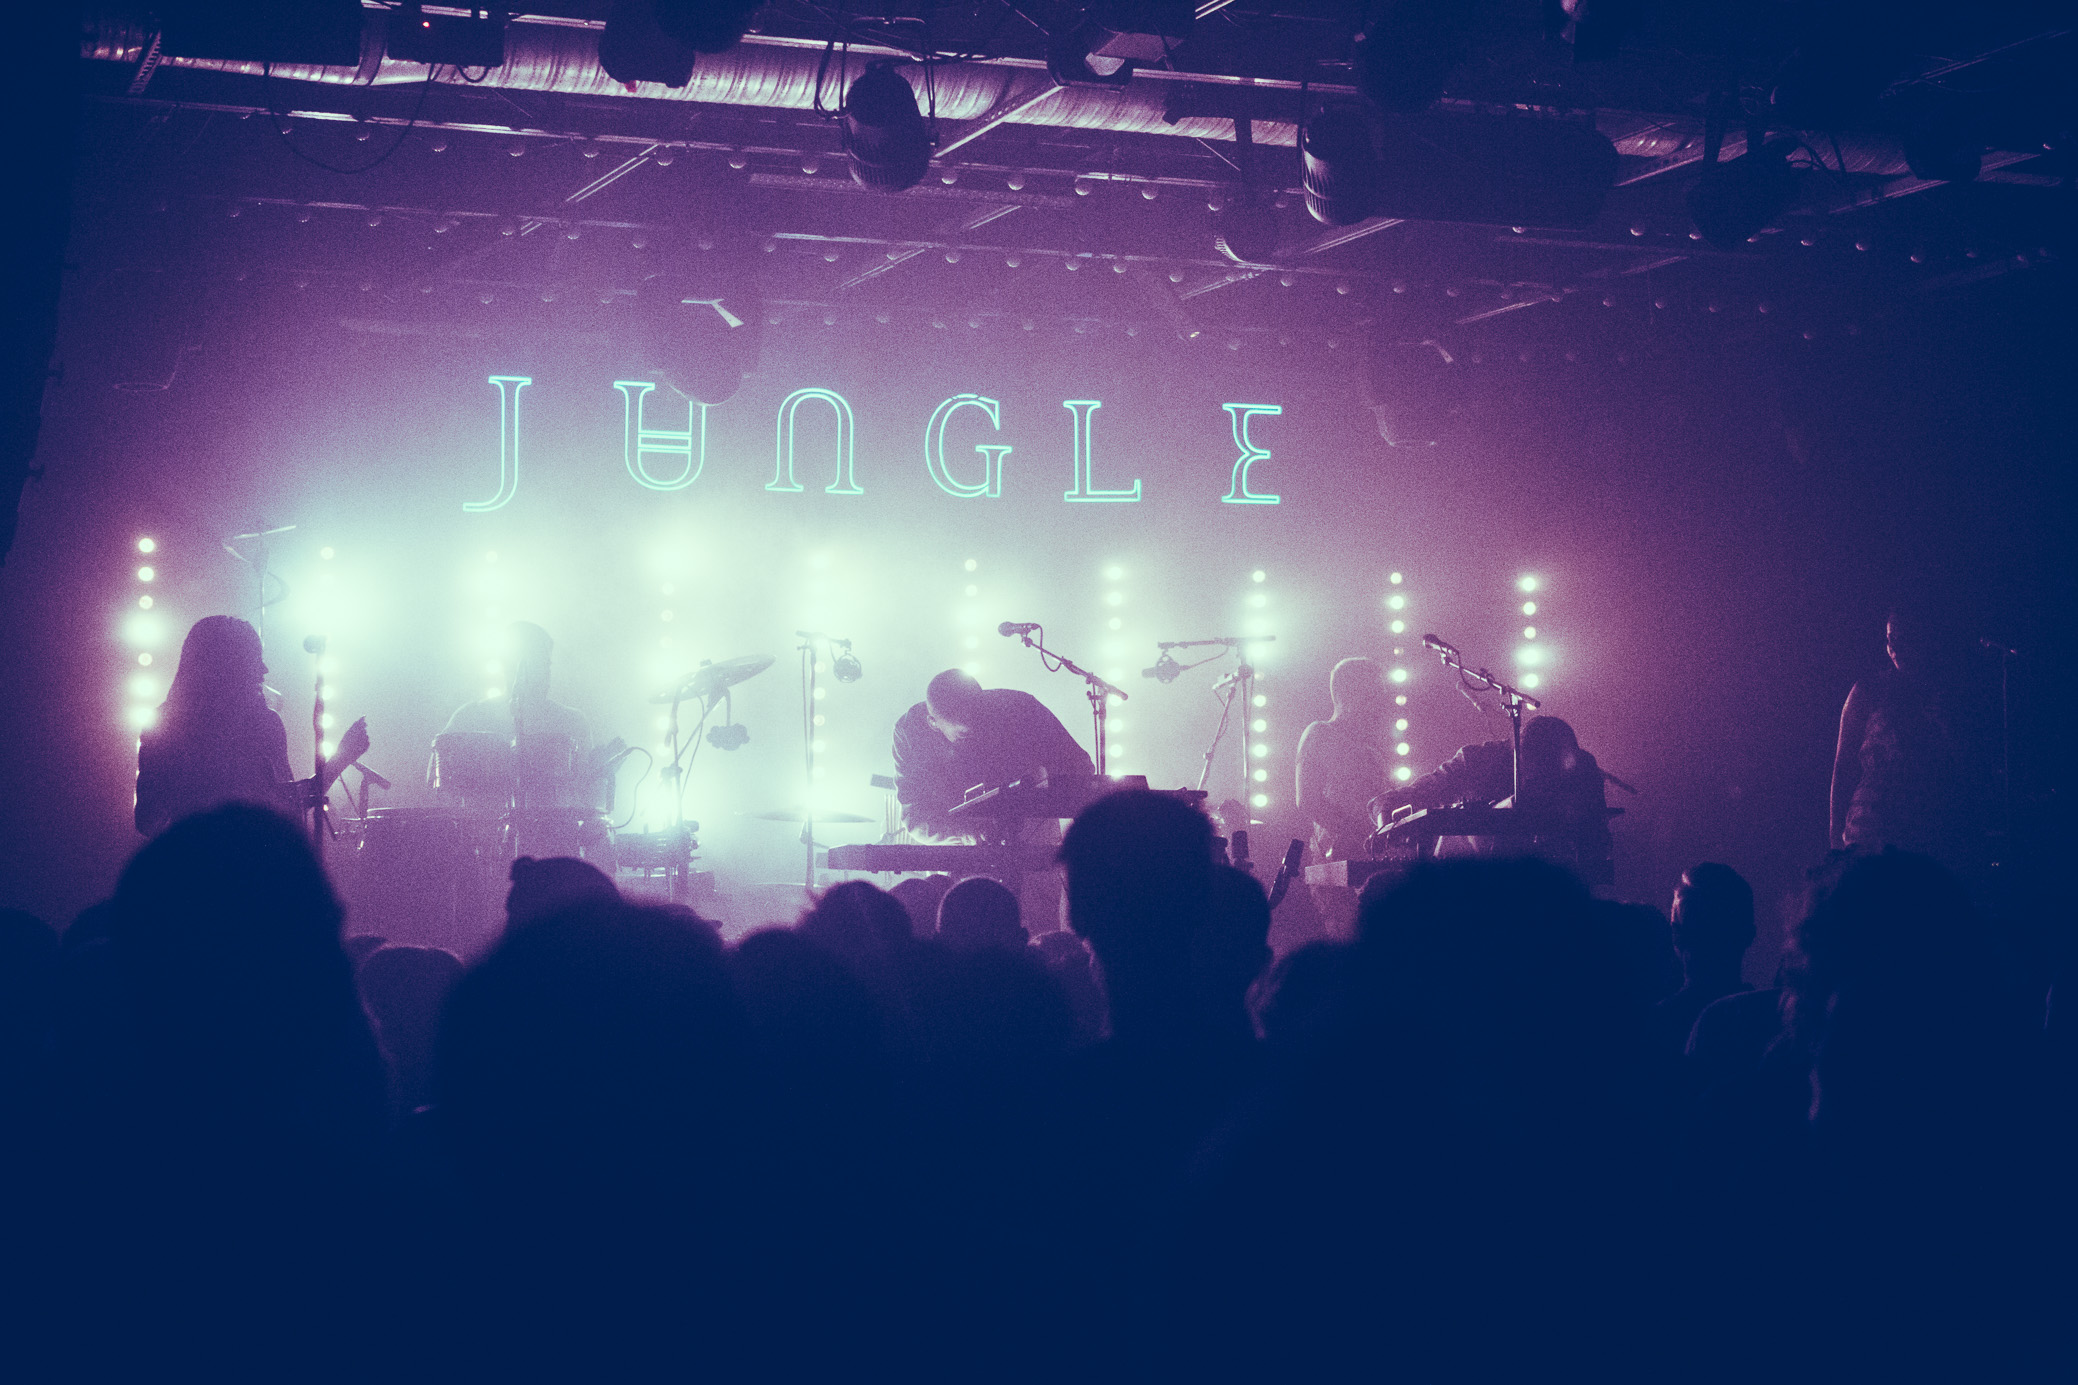 Jungle performs in concert at Saturn Birmingham in Birmingham, Alabama on June 9th, 2018. (Photo by David A. Smith/DSmithScenes)